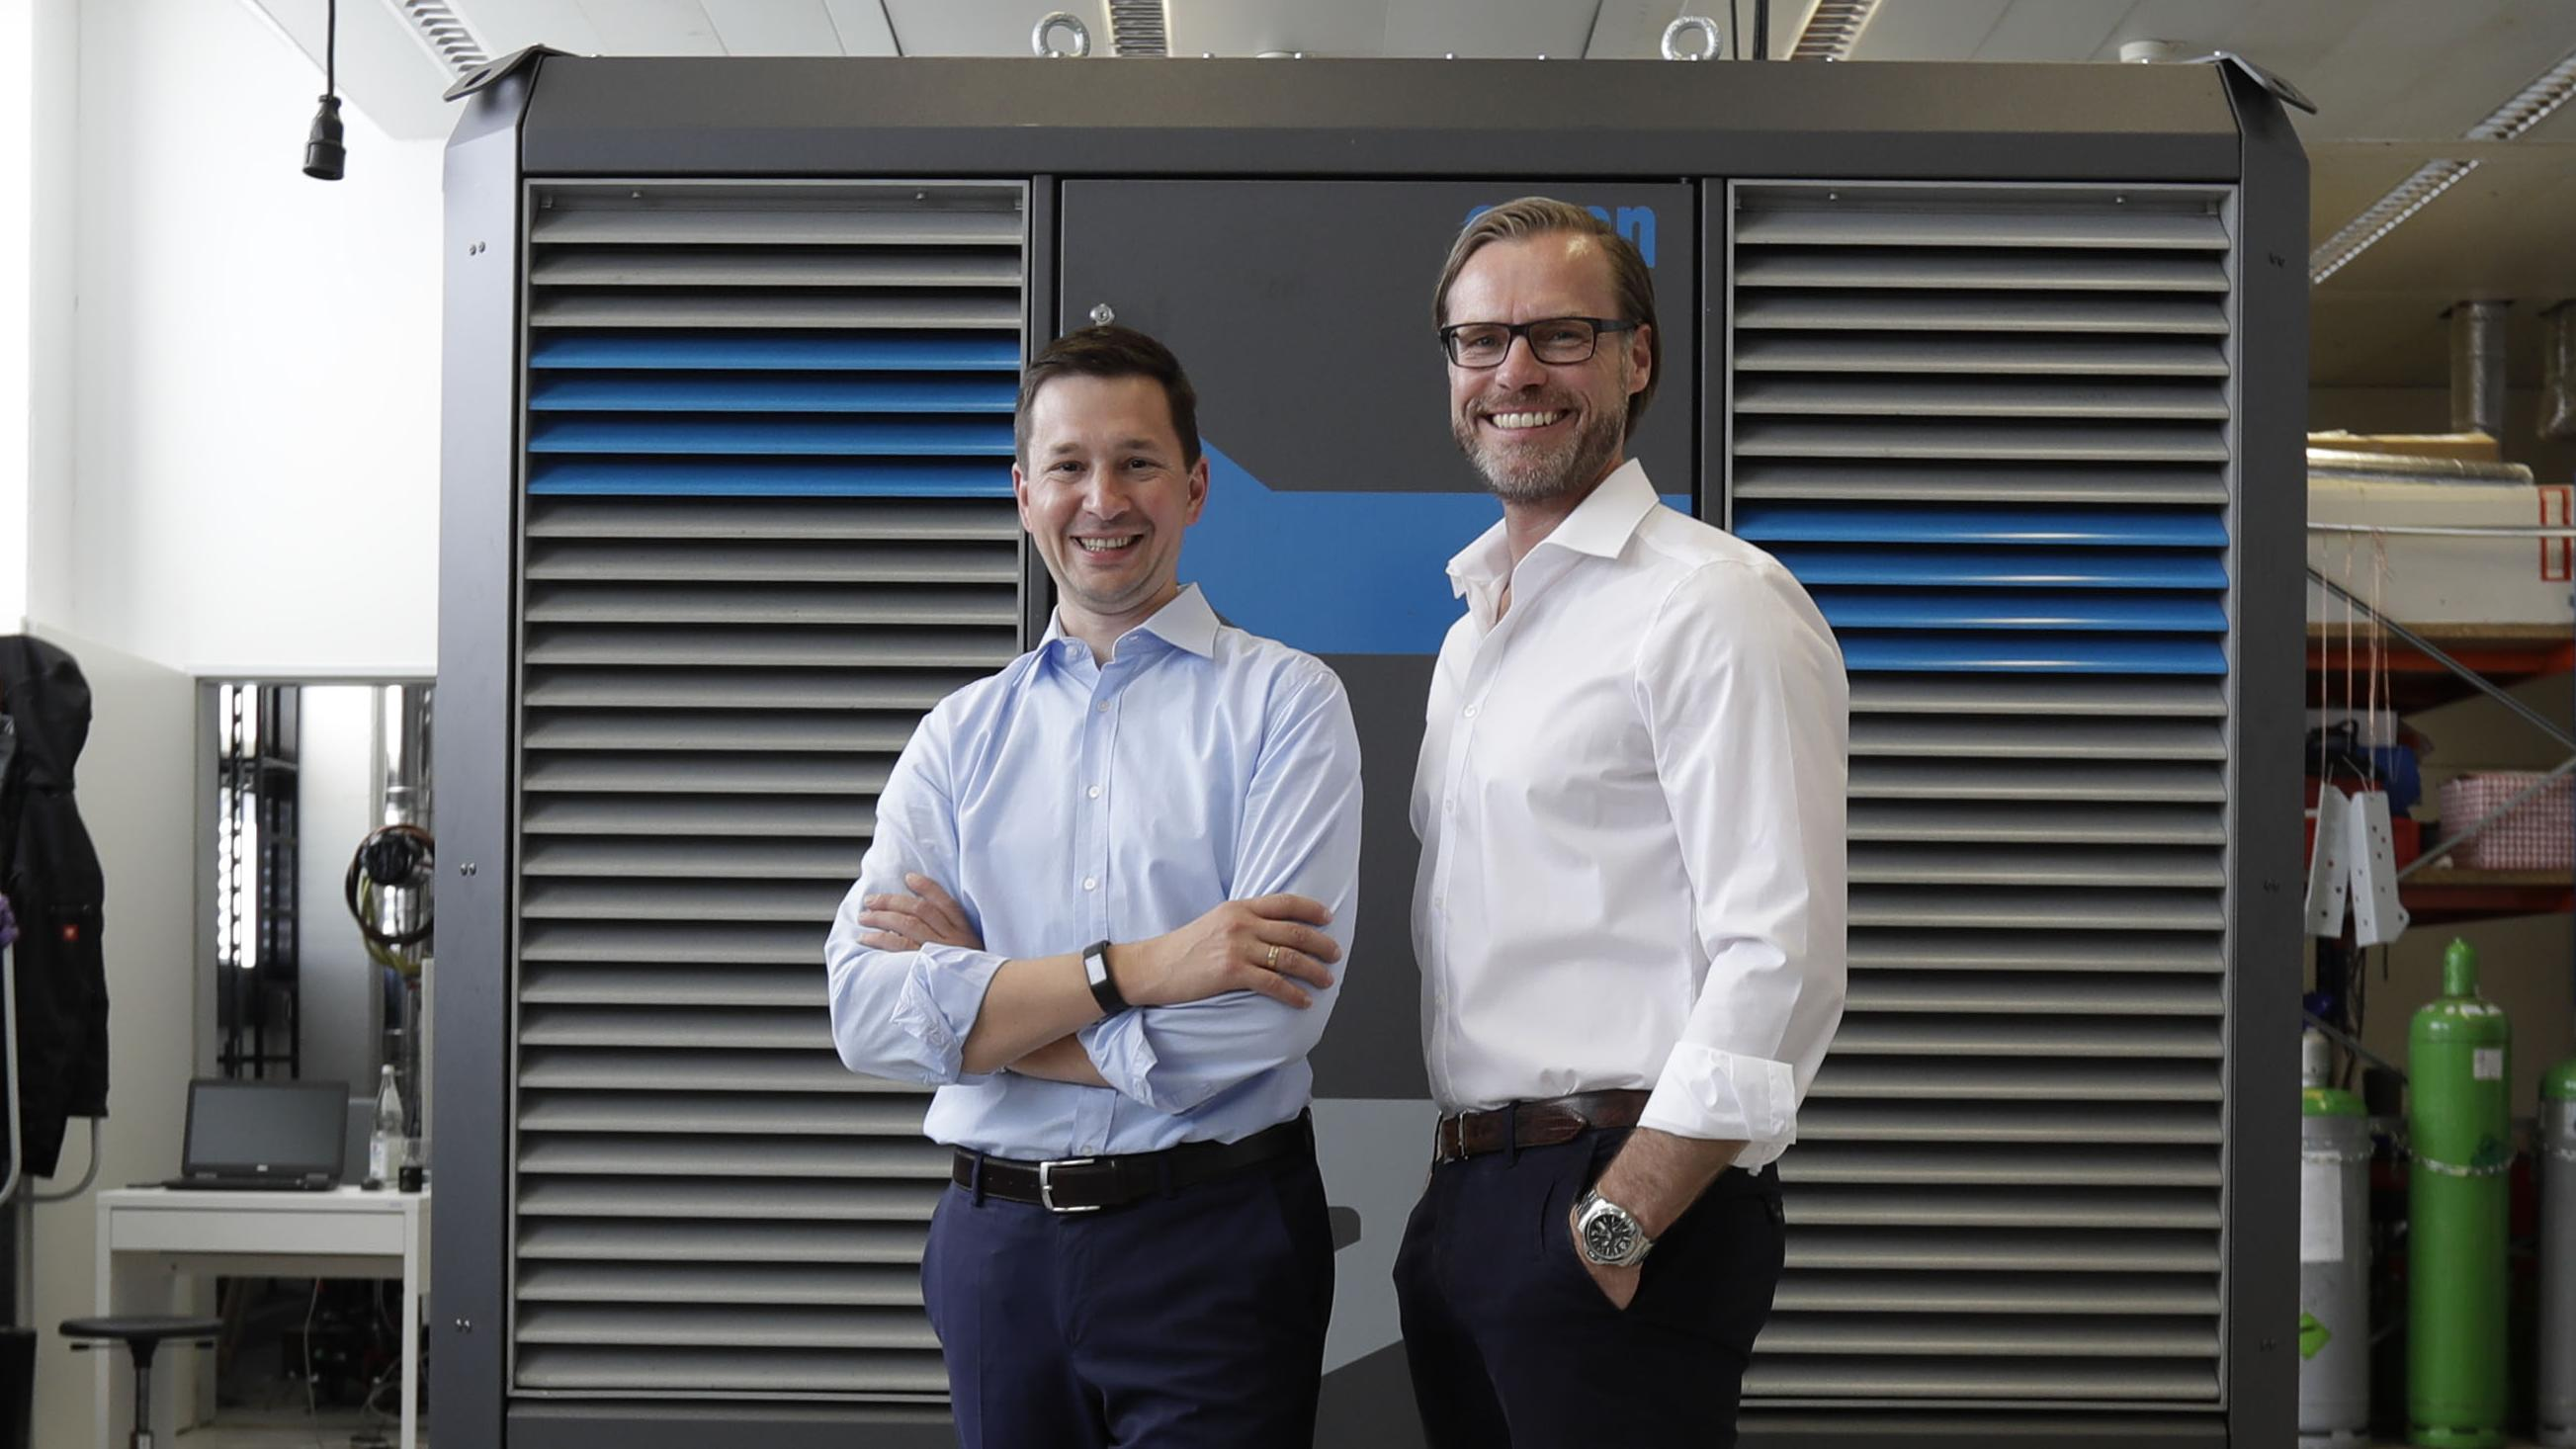 Andreas Sichert and Wolfgang Brand of Orcan Energy